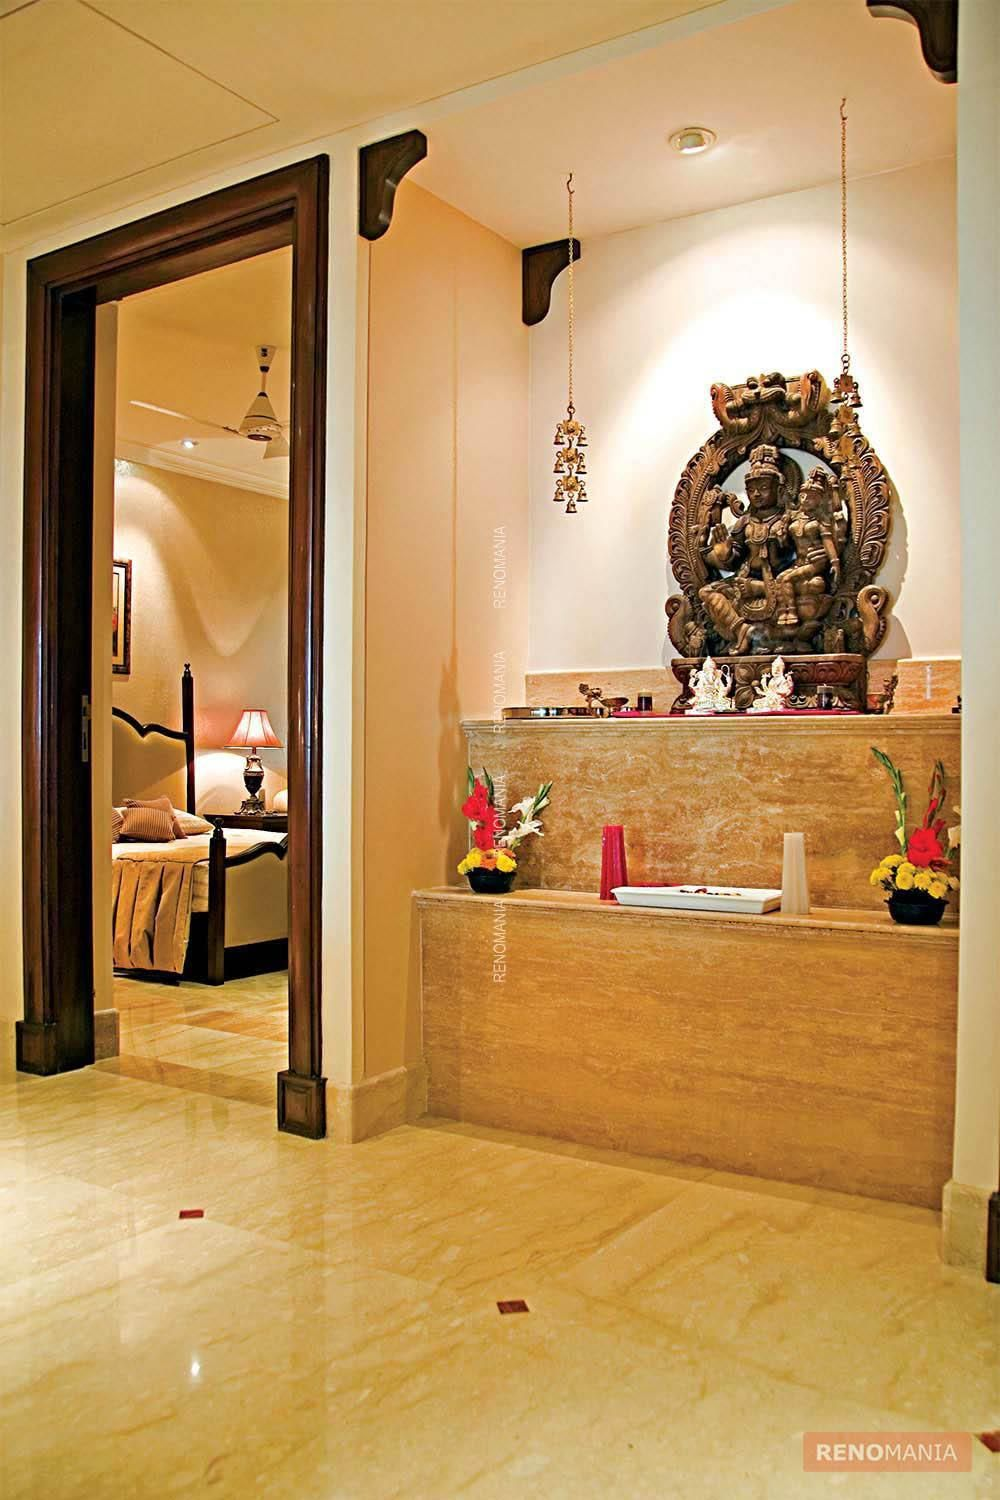 Pooja Room Door Designs Pooja Room: Pooja Rooms, Pooja Room Design